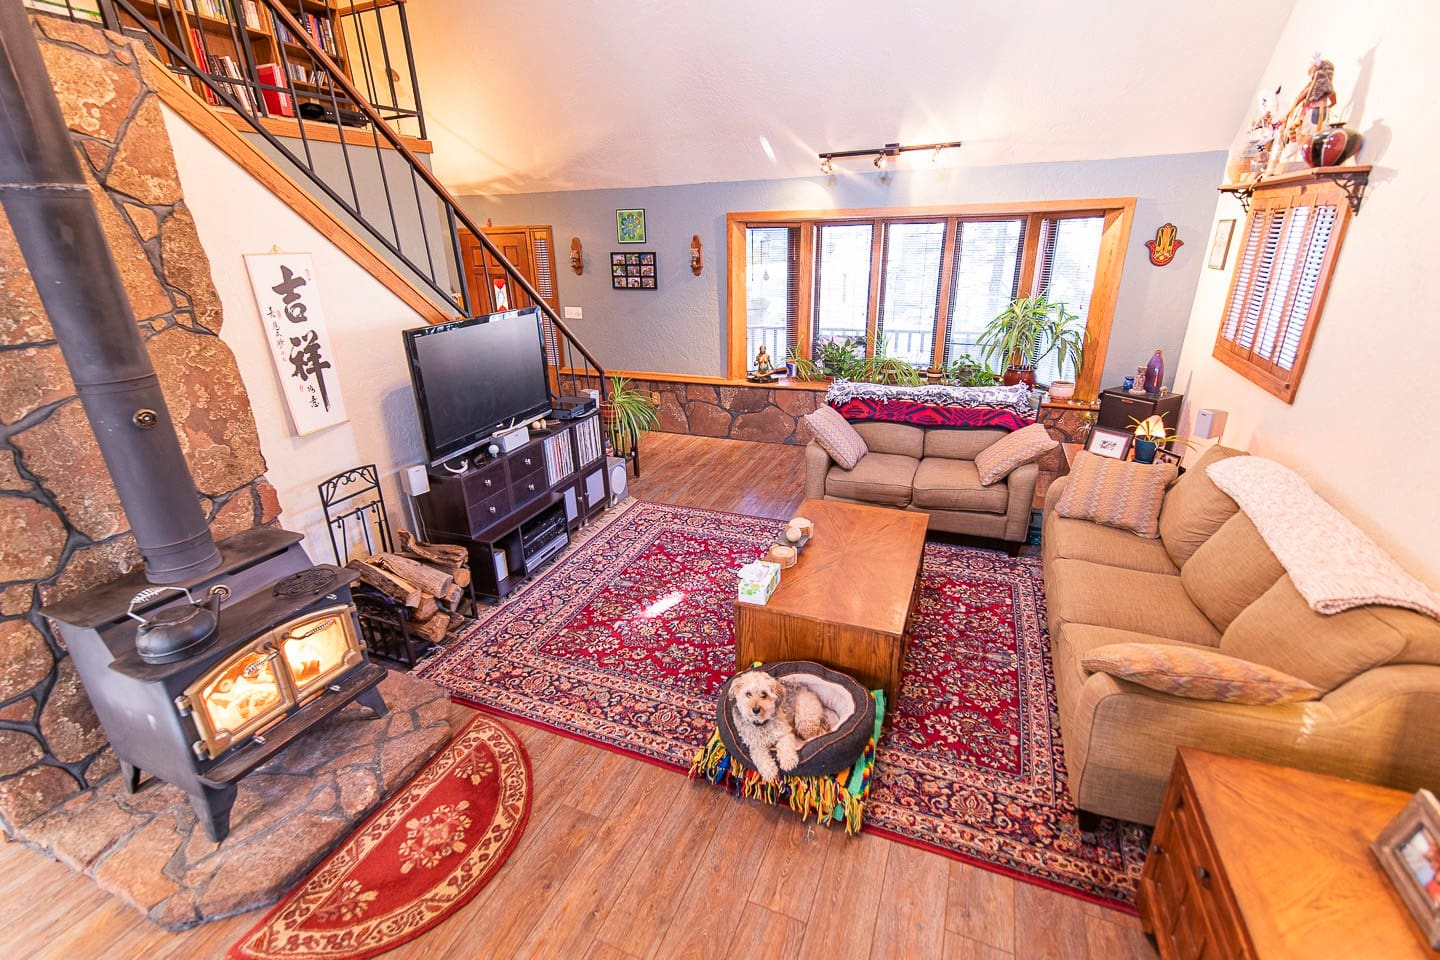 Overview (1/5): Beautiful living area with vaulted ceilings and wood-stove. Chester posing in his bed--for treats of course  Chris (host) is a professional photographer and took all images himself with a Nikon D750